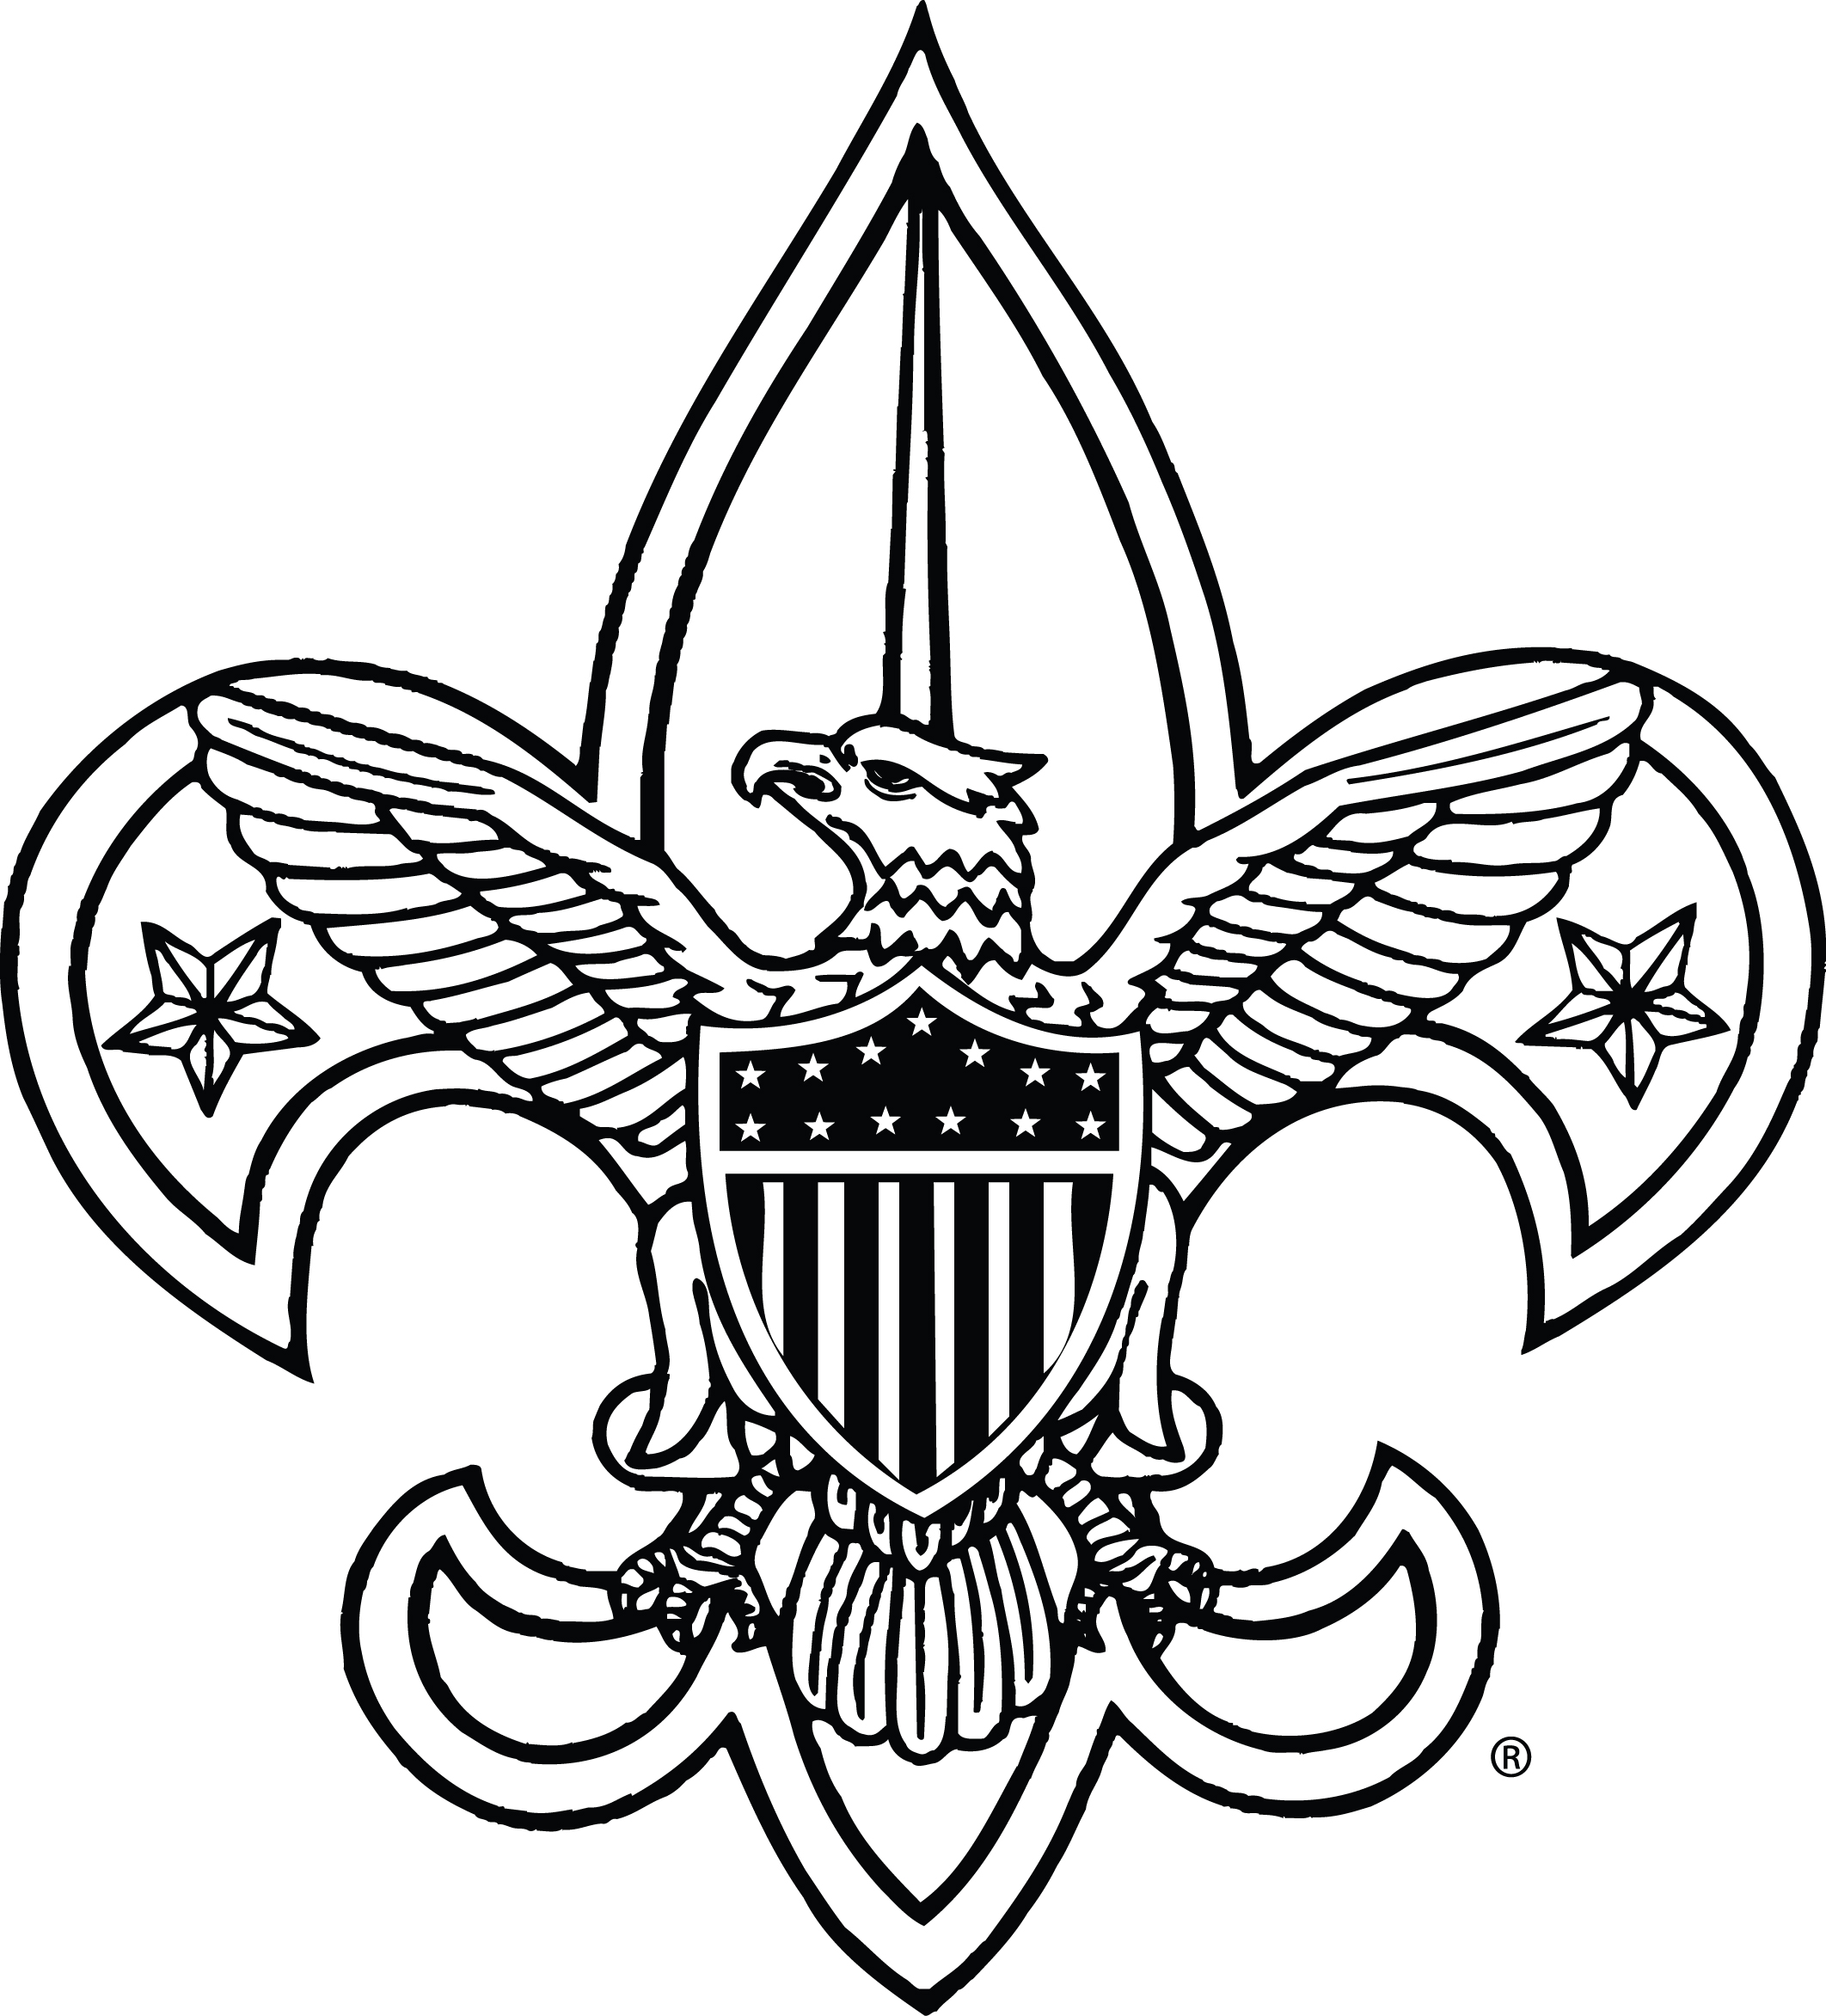 Boy Scout Symbol Images | Free download best Boy Scout